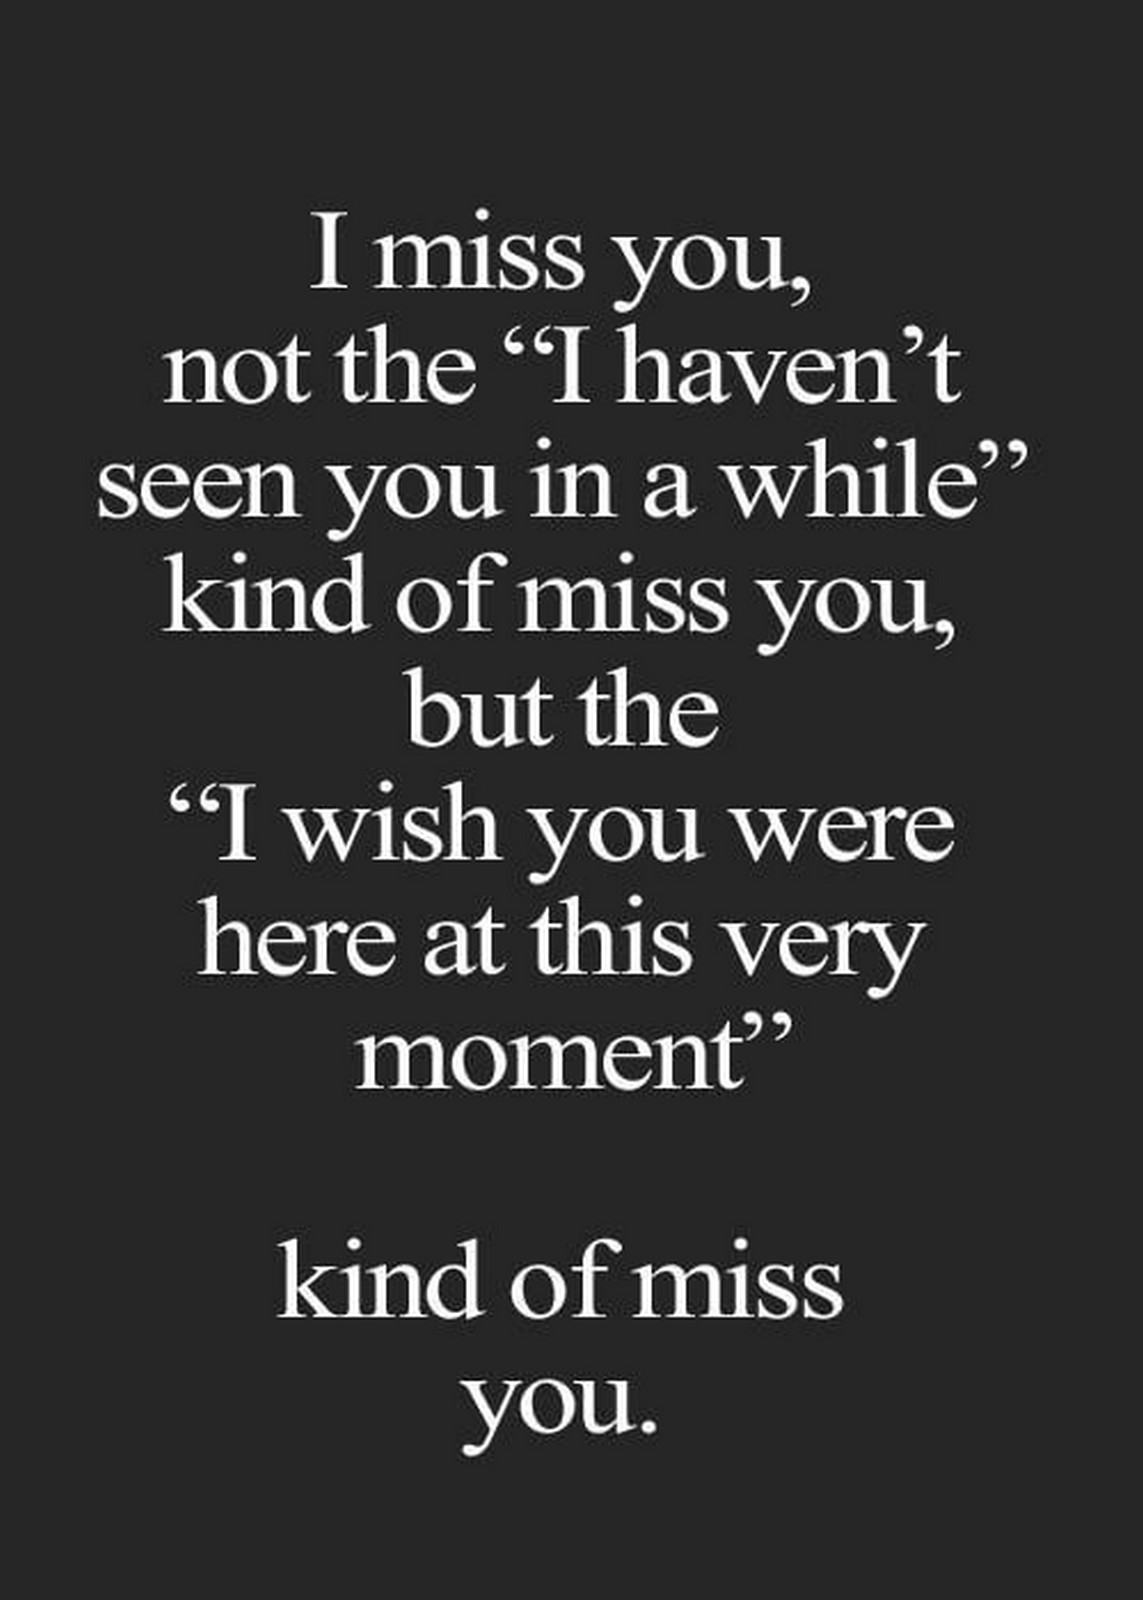 Wish You Were Here Quotes 55 Romantic Quotes You'll Want To Share With The Love Of Your Life